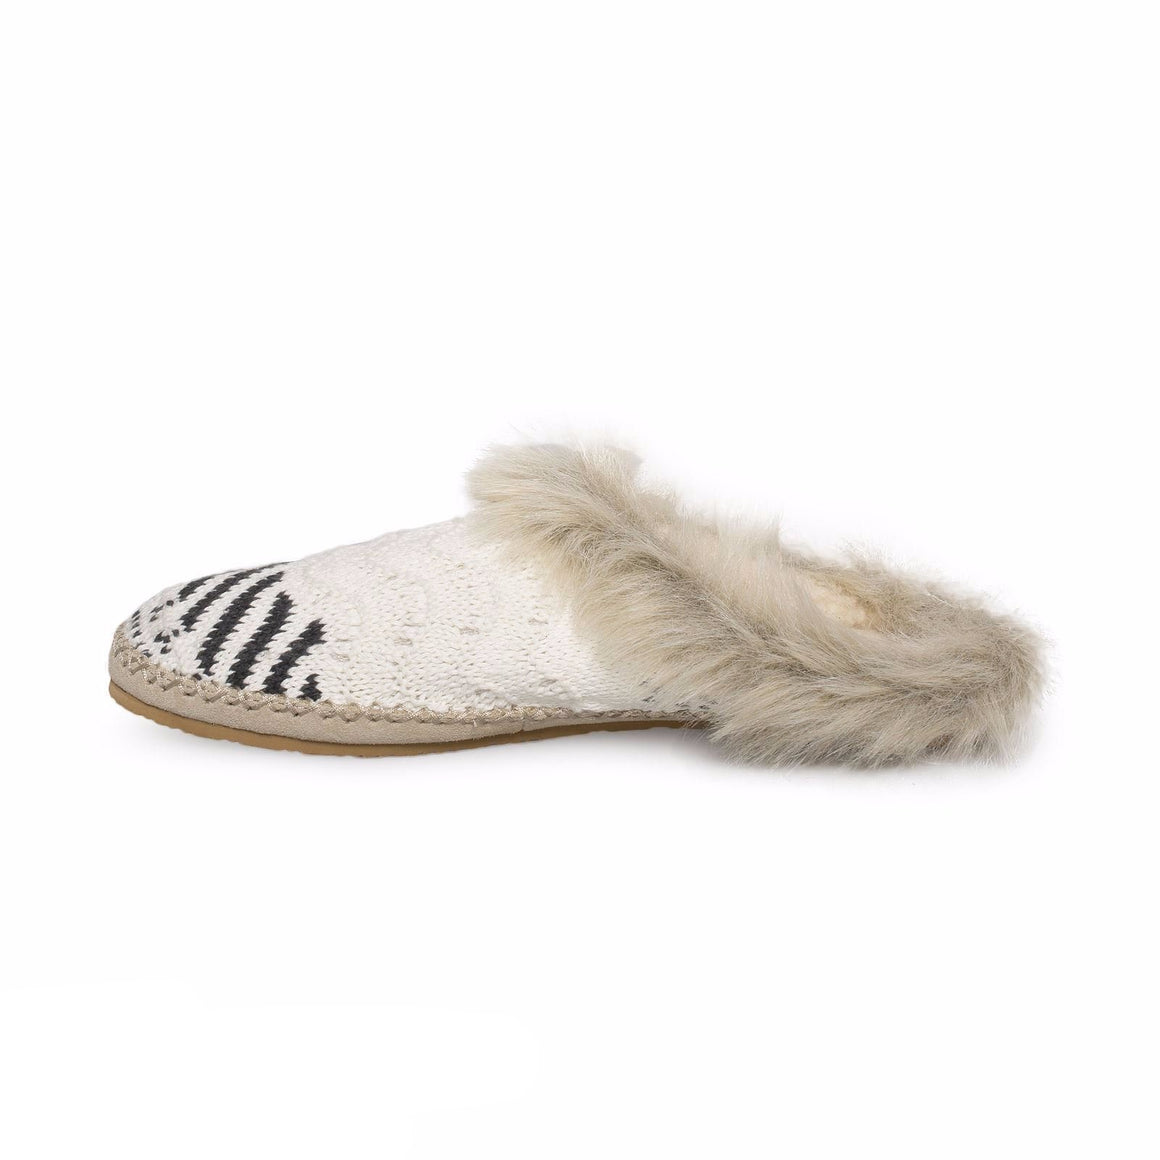 Sanuk Willo Pillow LX Natural Sweater Slippers